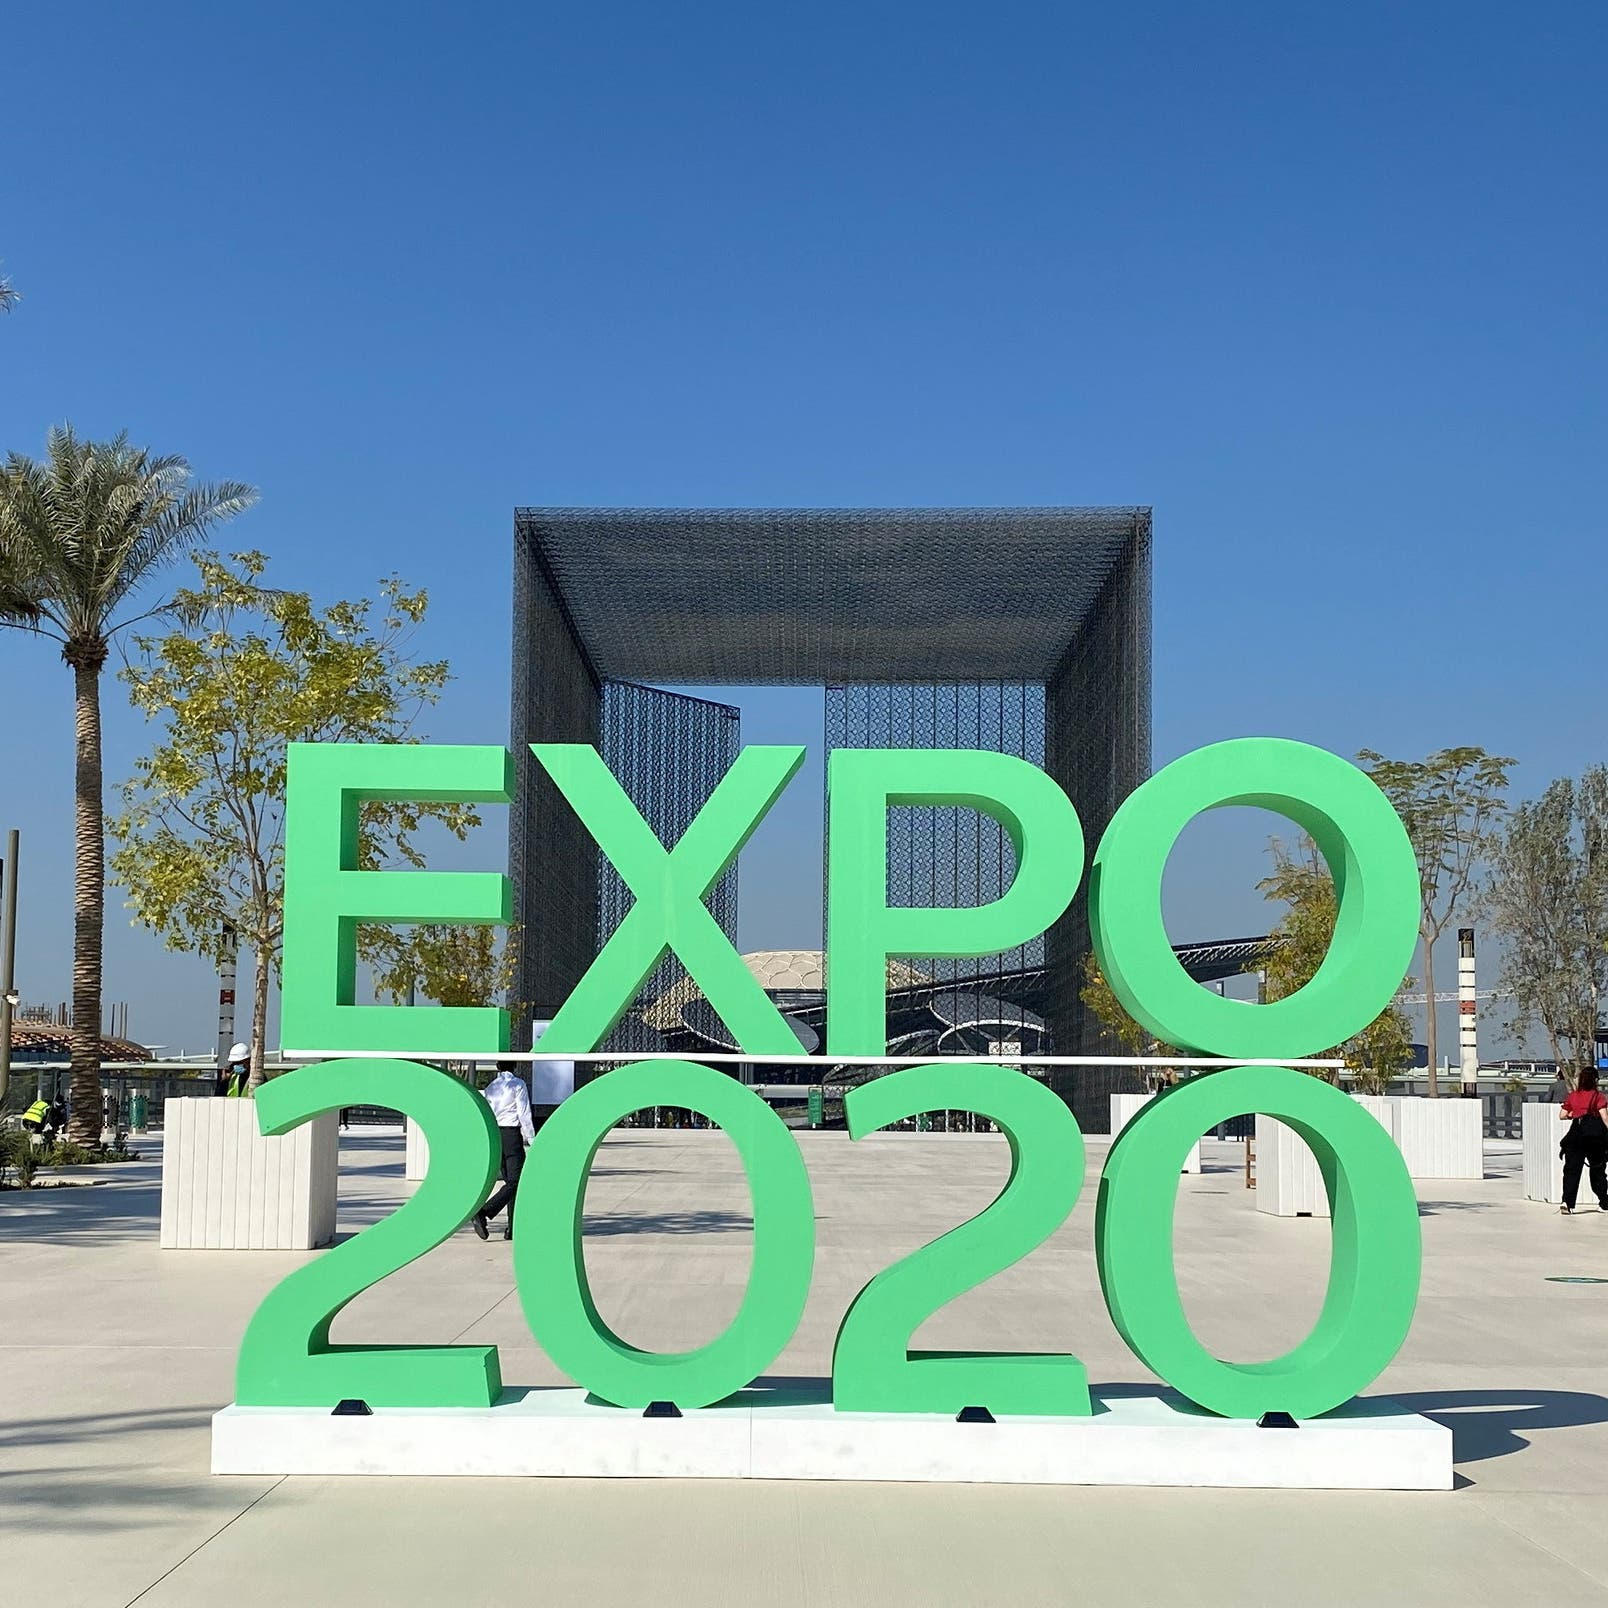 Dubai Expo 2020: Everything you need to know about the UAE mega-event